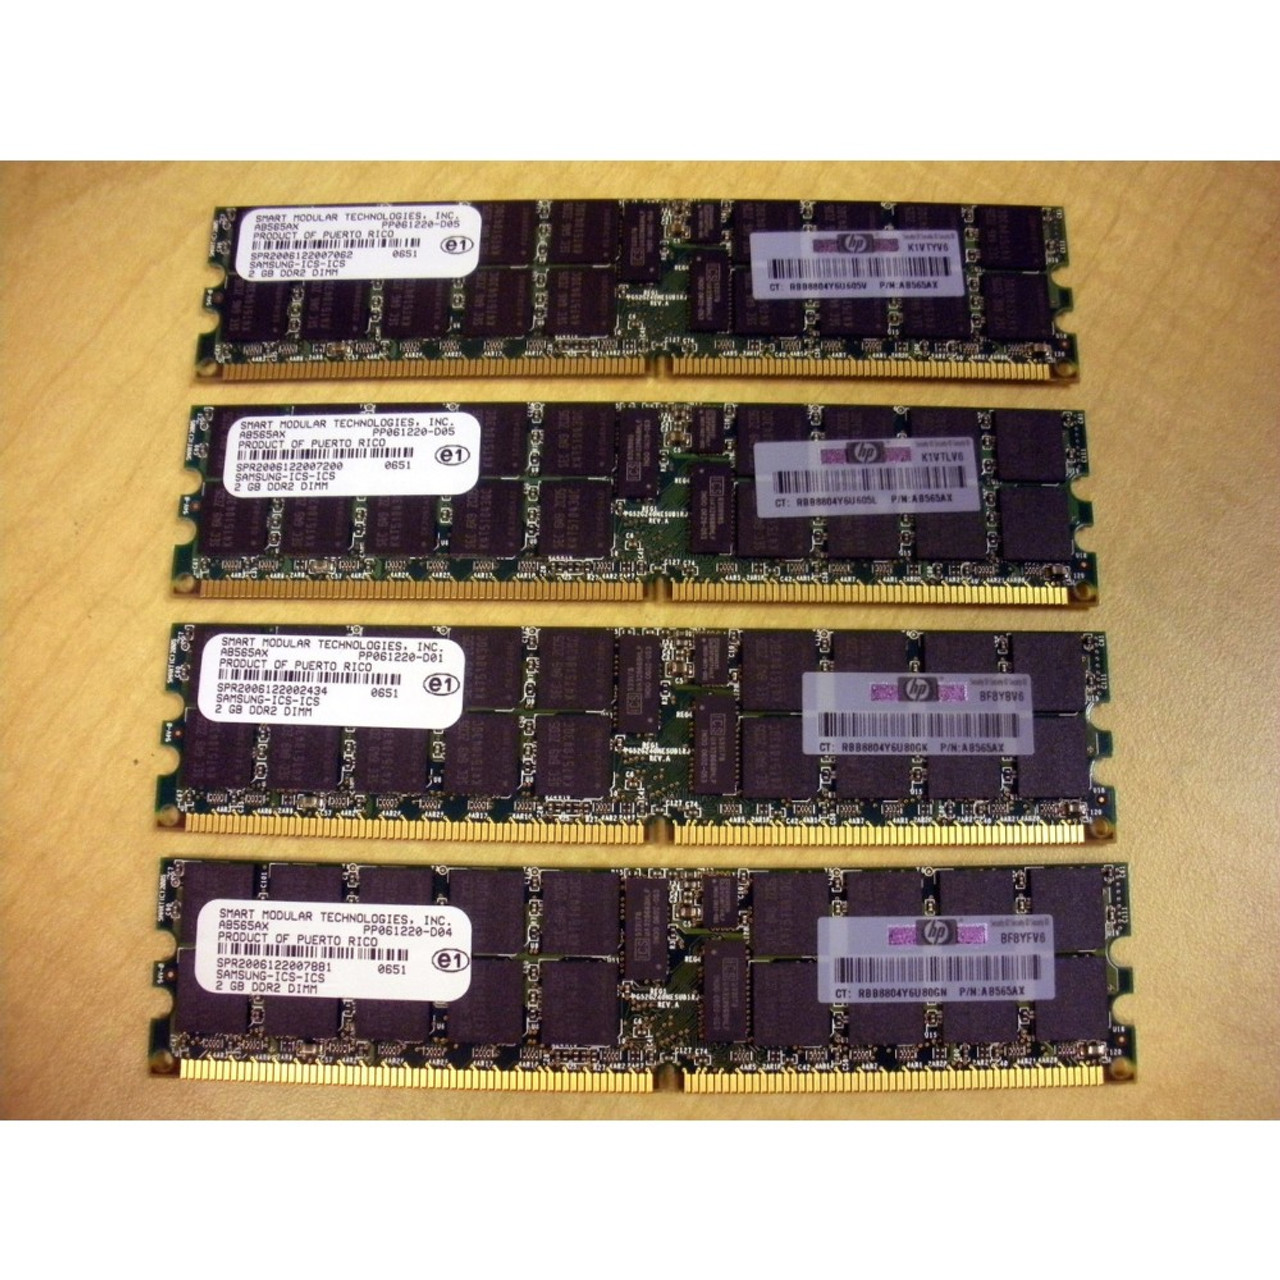 4x2GB Memory PC2-5300 ECC UNBUFFERED RAM IBM System-X 3105 Express 8GB